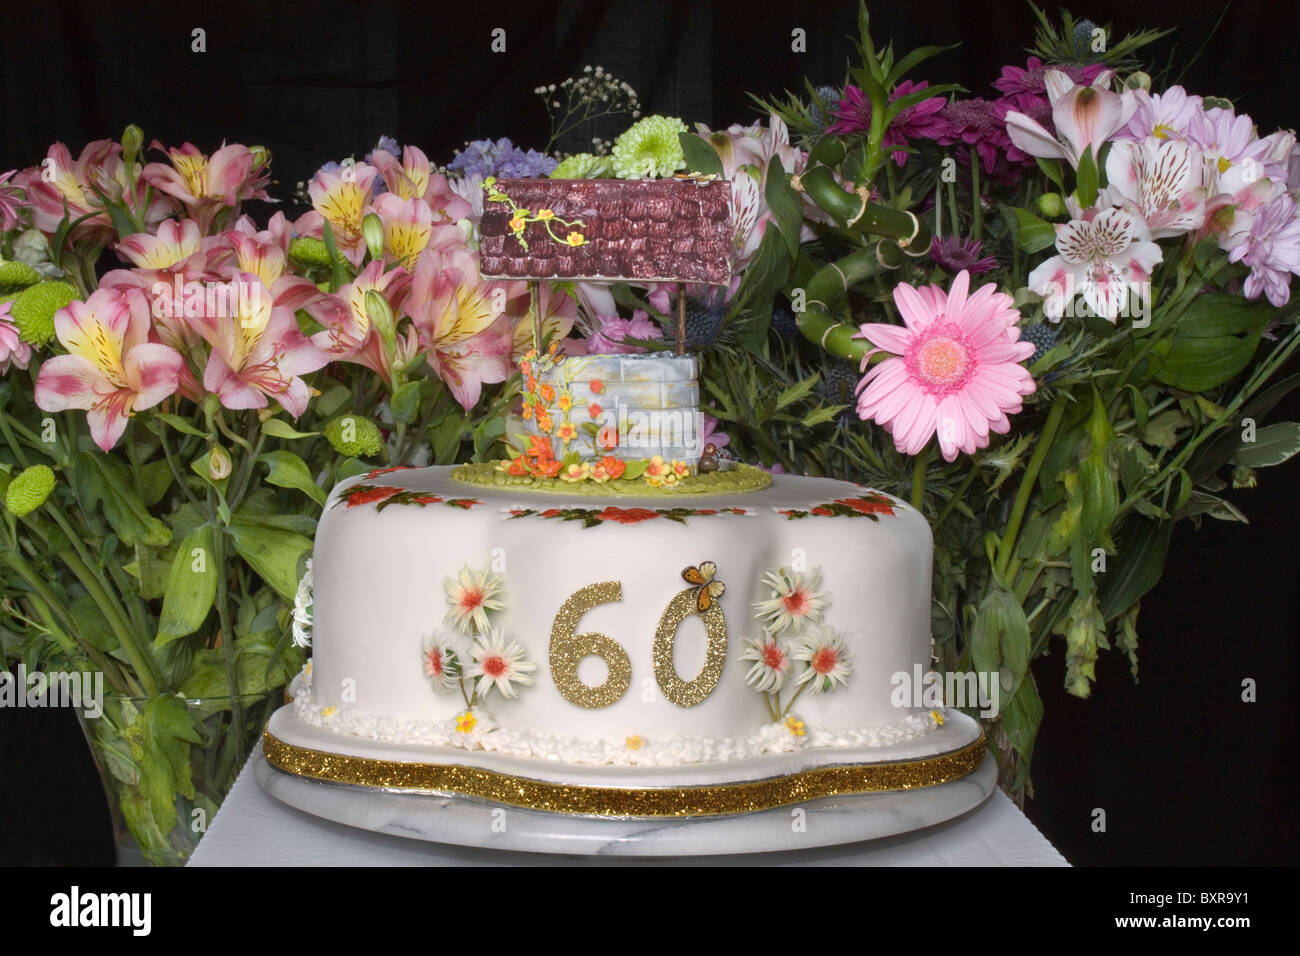 A 60th Birthday Cake With Wishing Well On Top And Cut